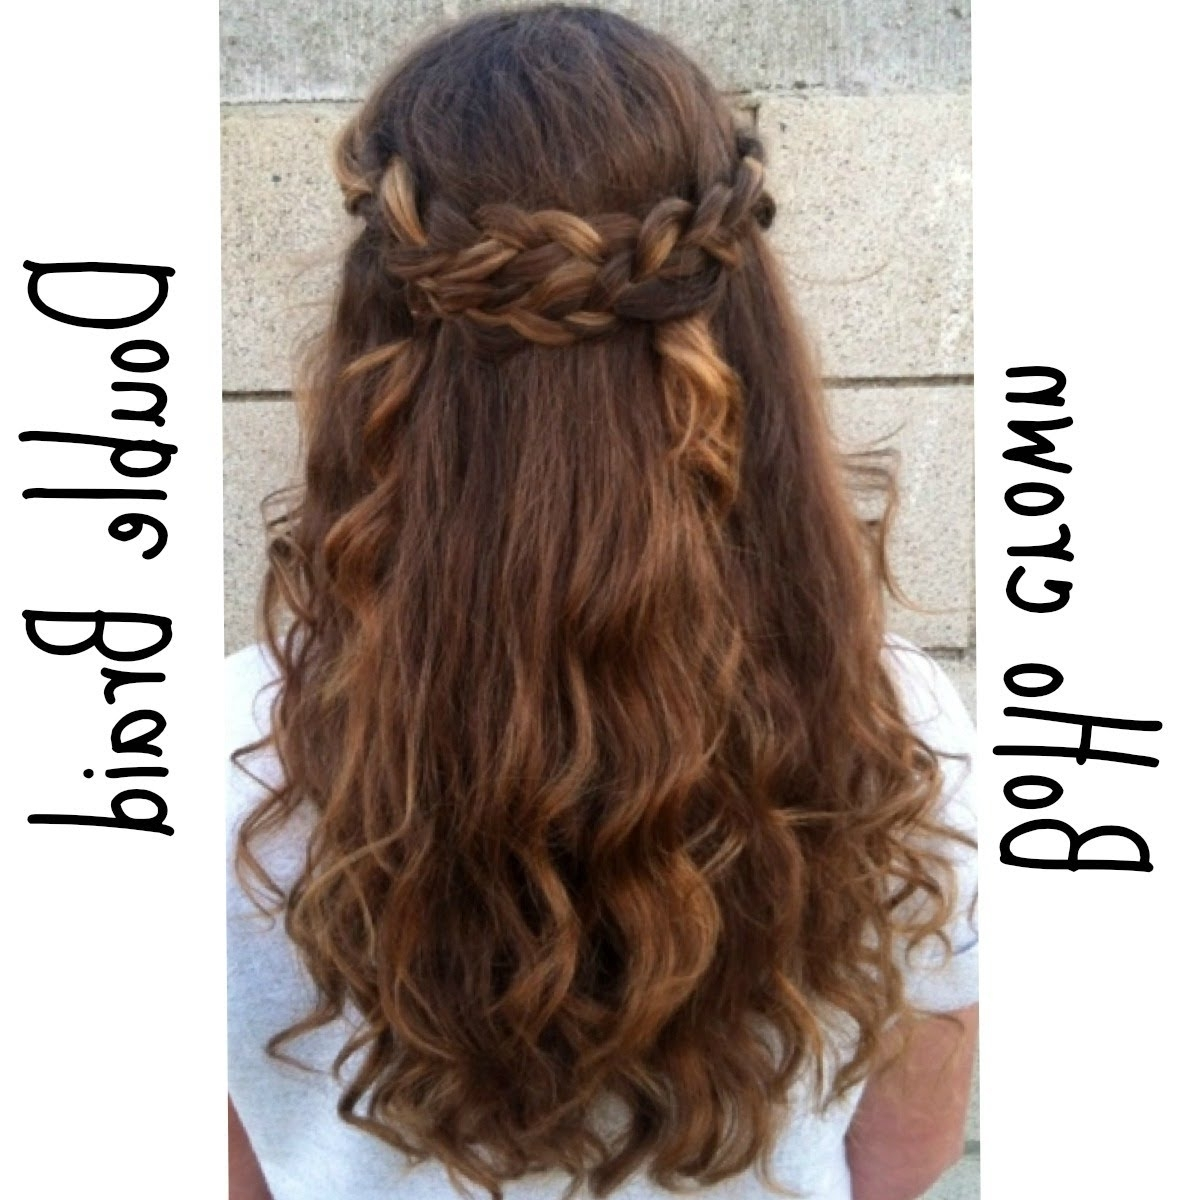 Braided Half Up Half Down Hairstyle – Youtube Within Braided Half Updo Hairstyles (View 4 of 15)